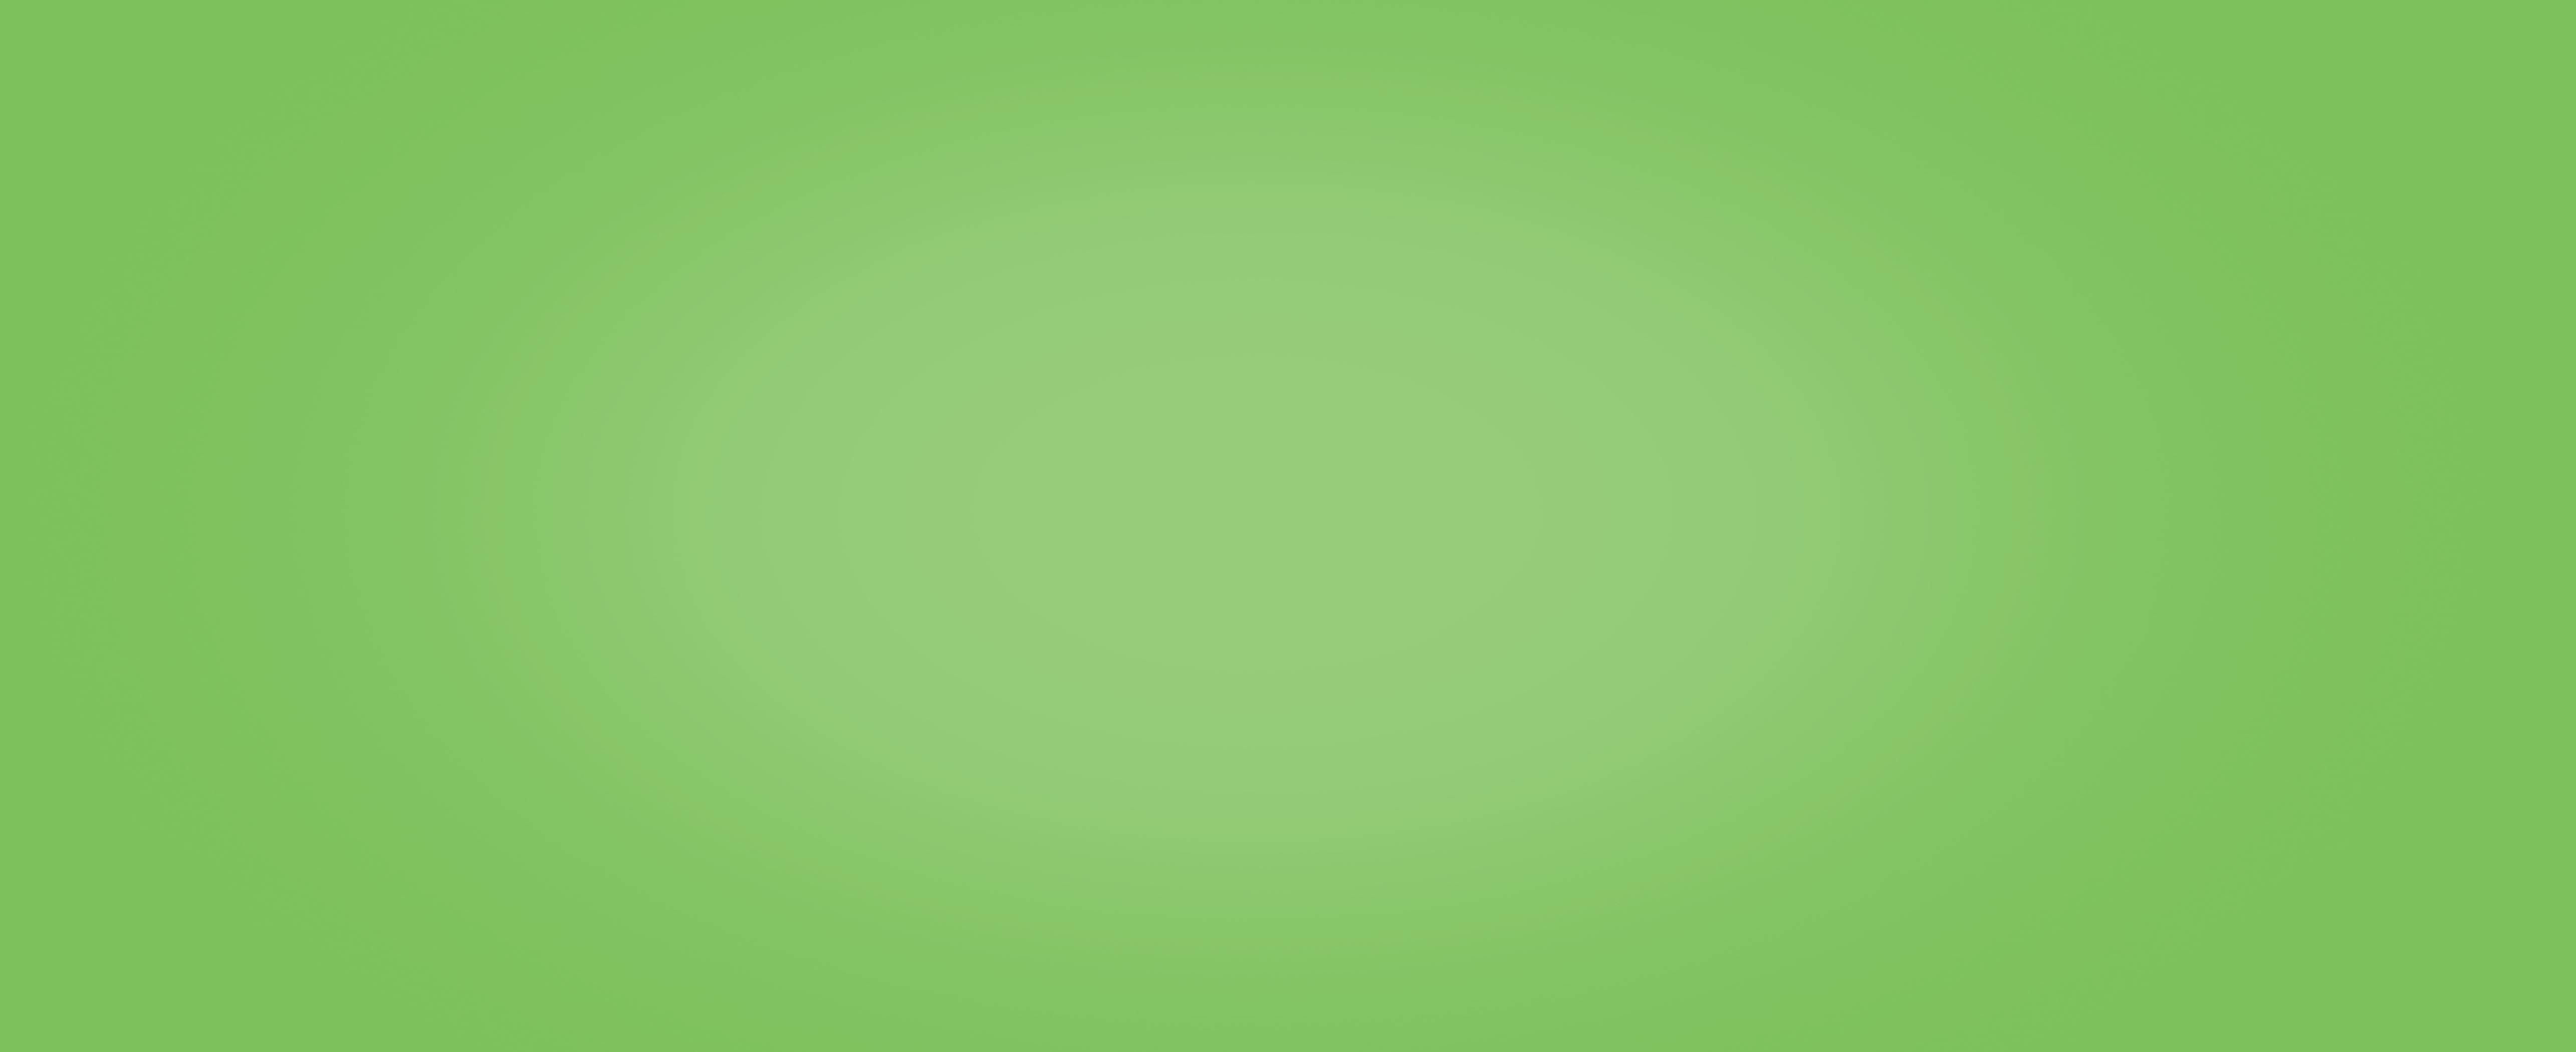 green_background-02.png